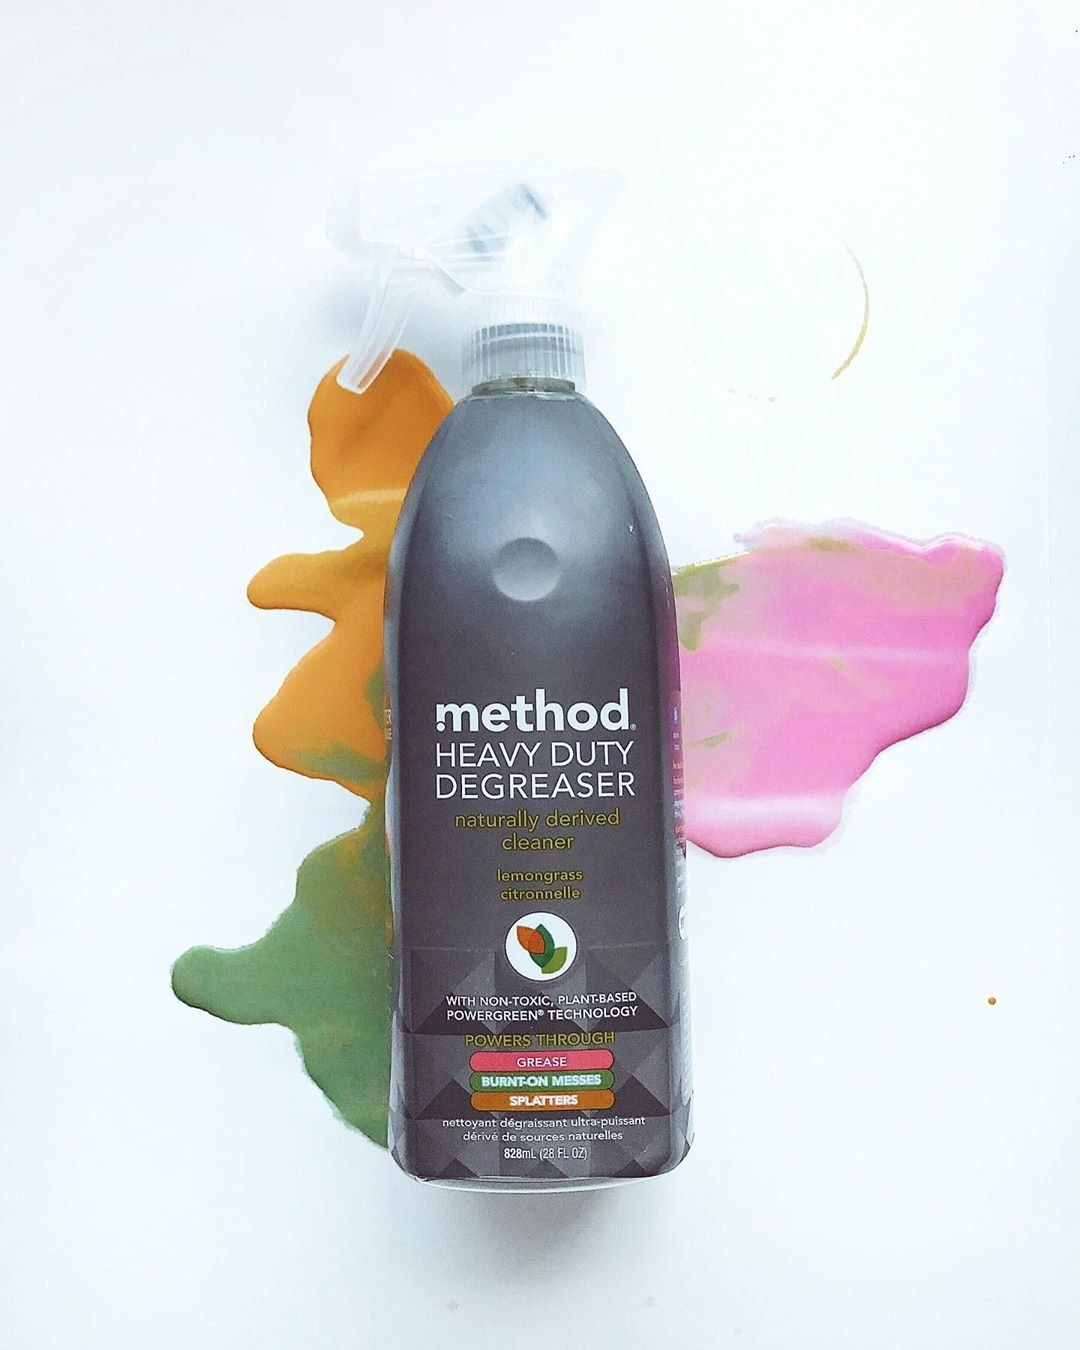 Bottle of product on abstract background